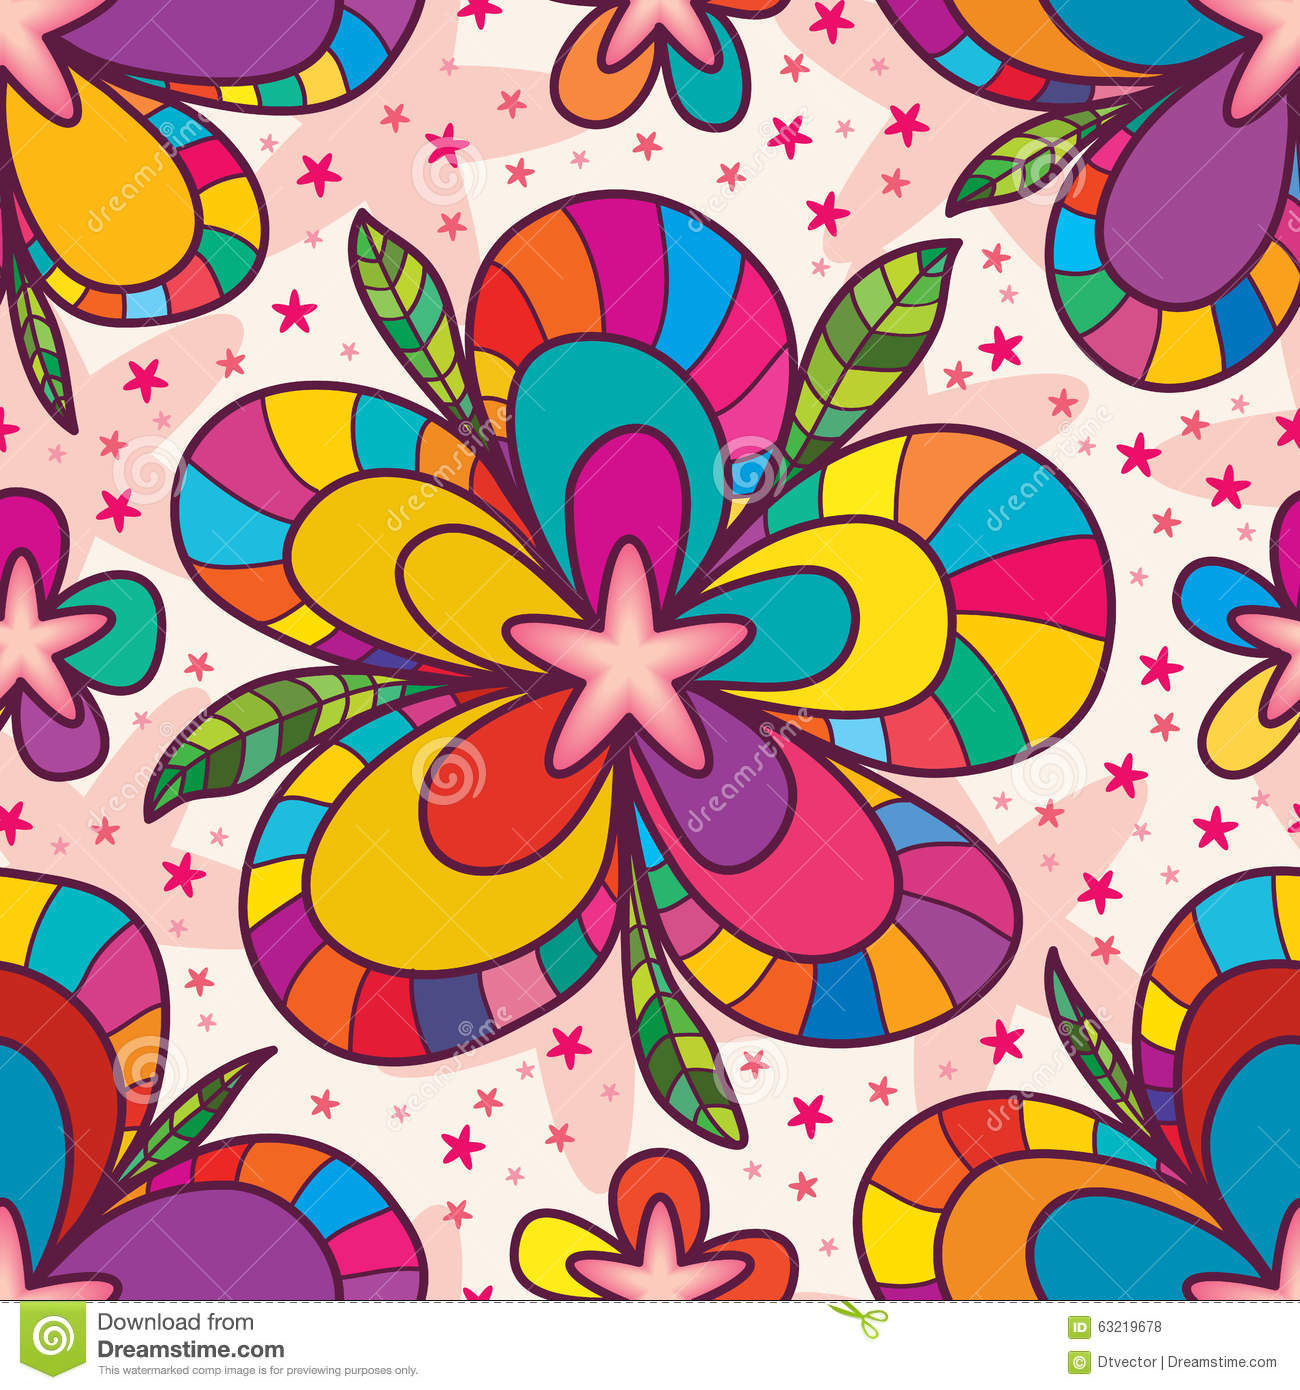 colorful designs and patterns to draw wwwimgkidcom